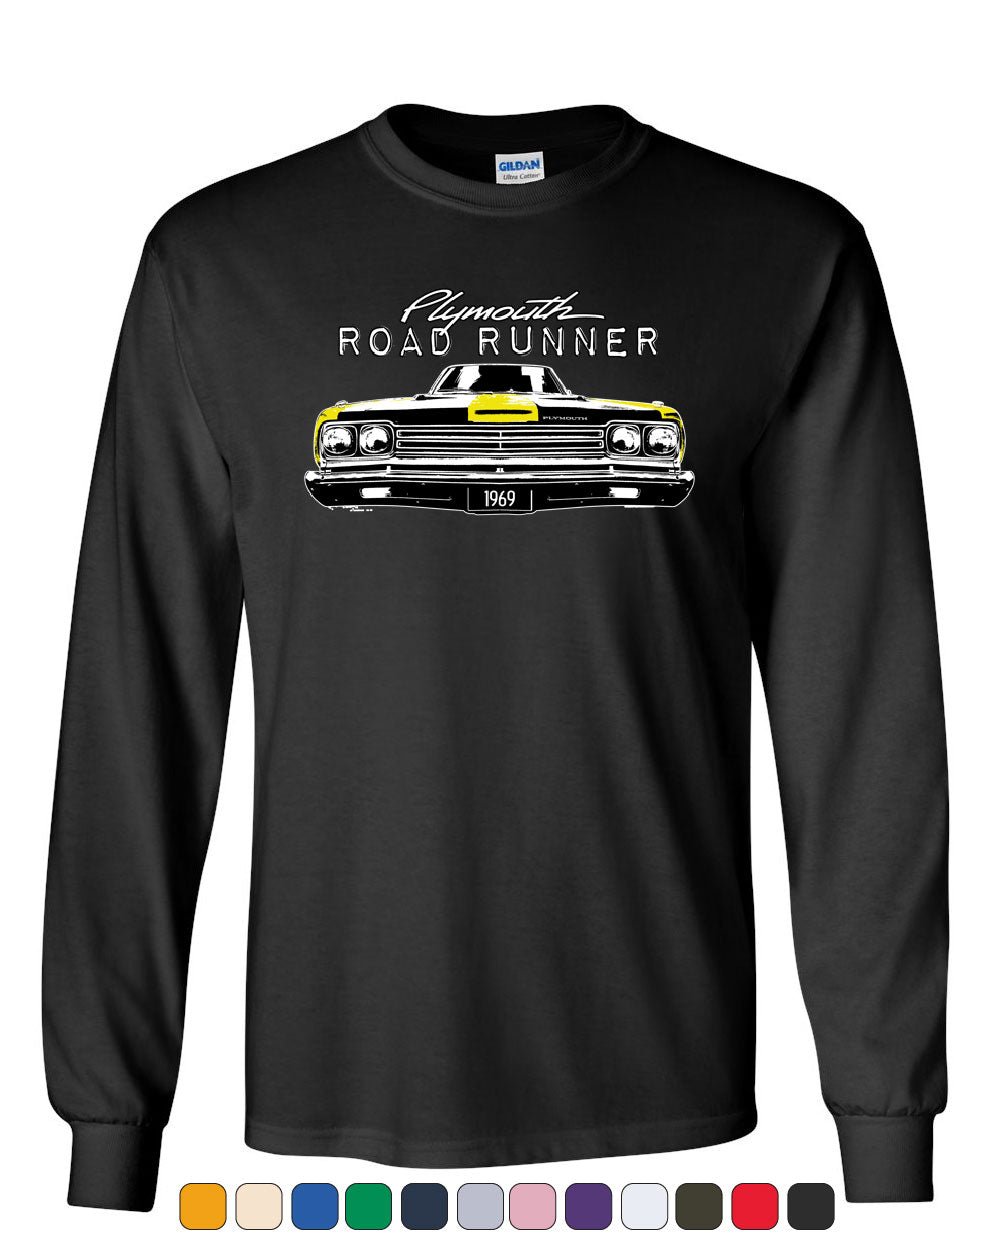 Plymouth Road Runner 1969 Youth T-Shirt Route 66 American Made Classic Kids Tee